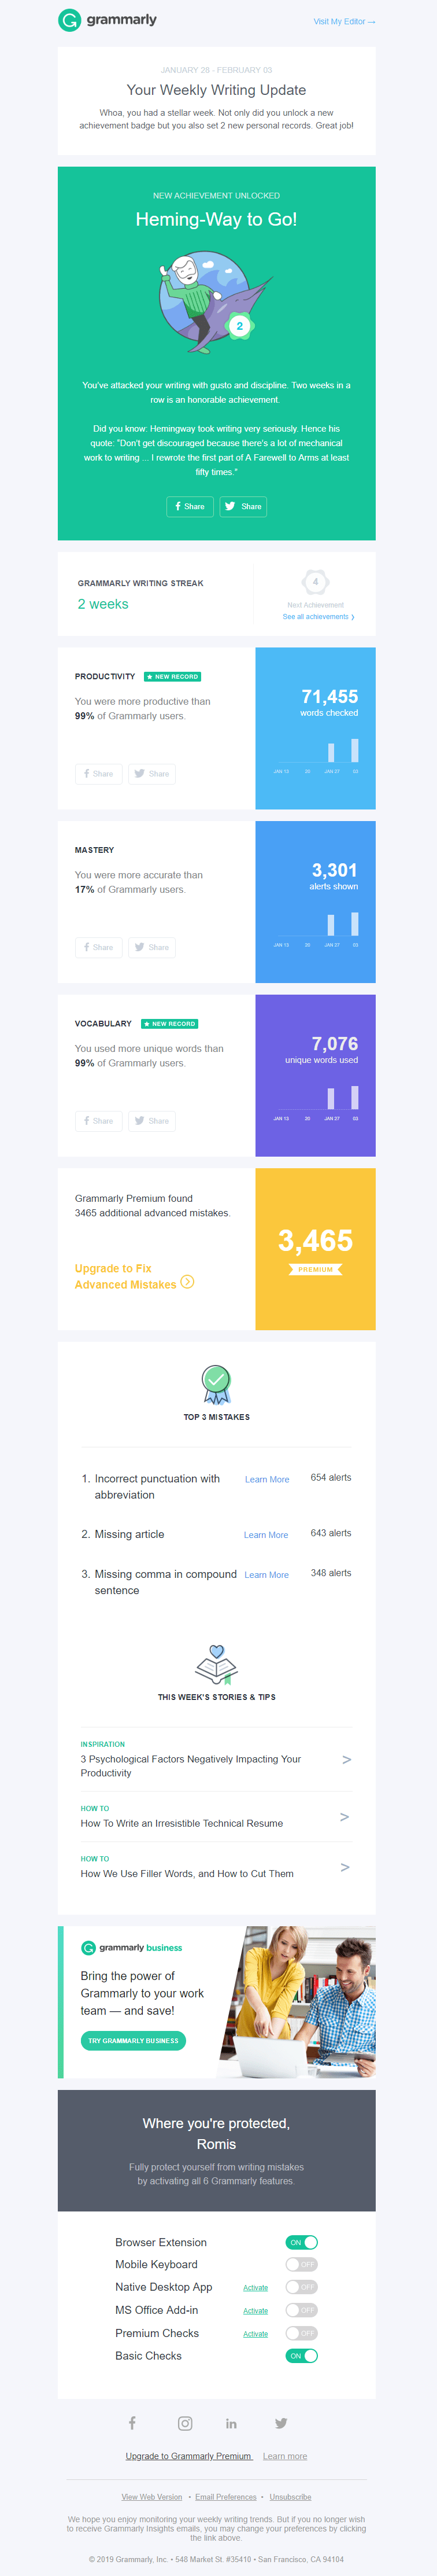 Grammarly personalized progress and upsell